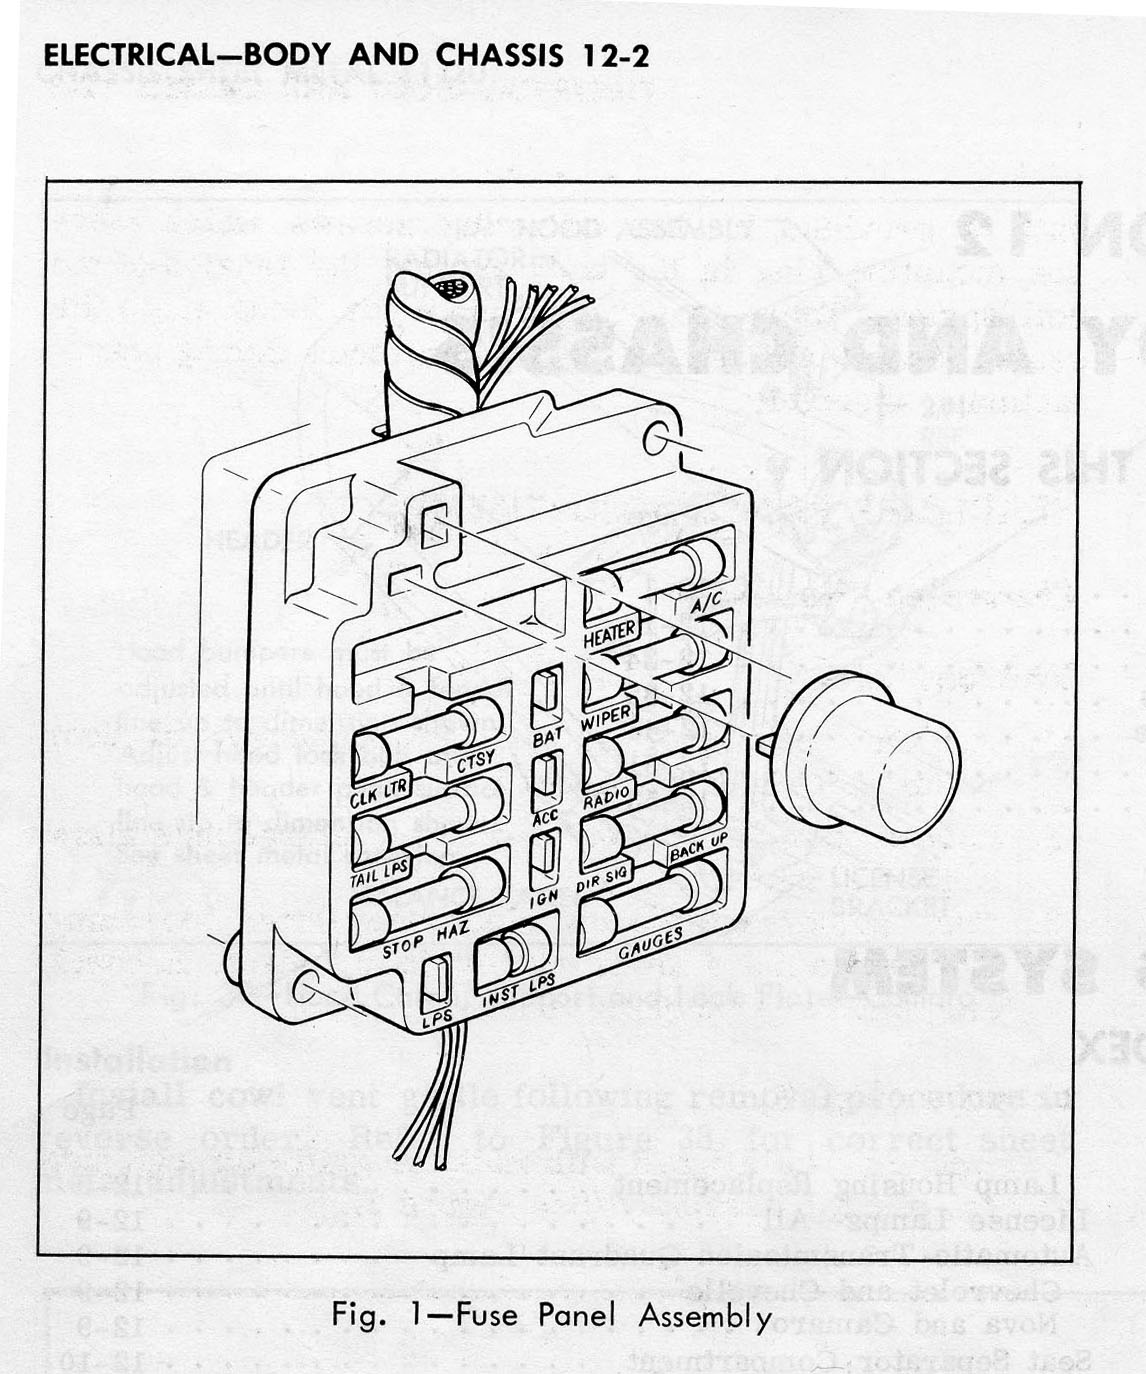 82 Camaro Fuse Box Diagram, 82, Get Free Image About